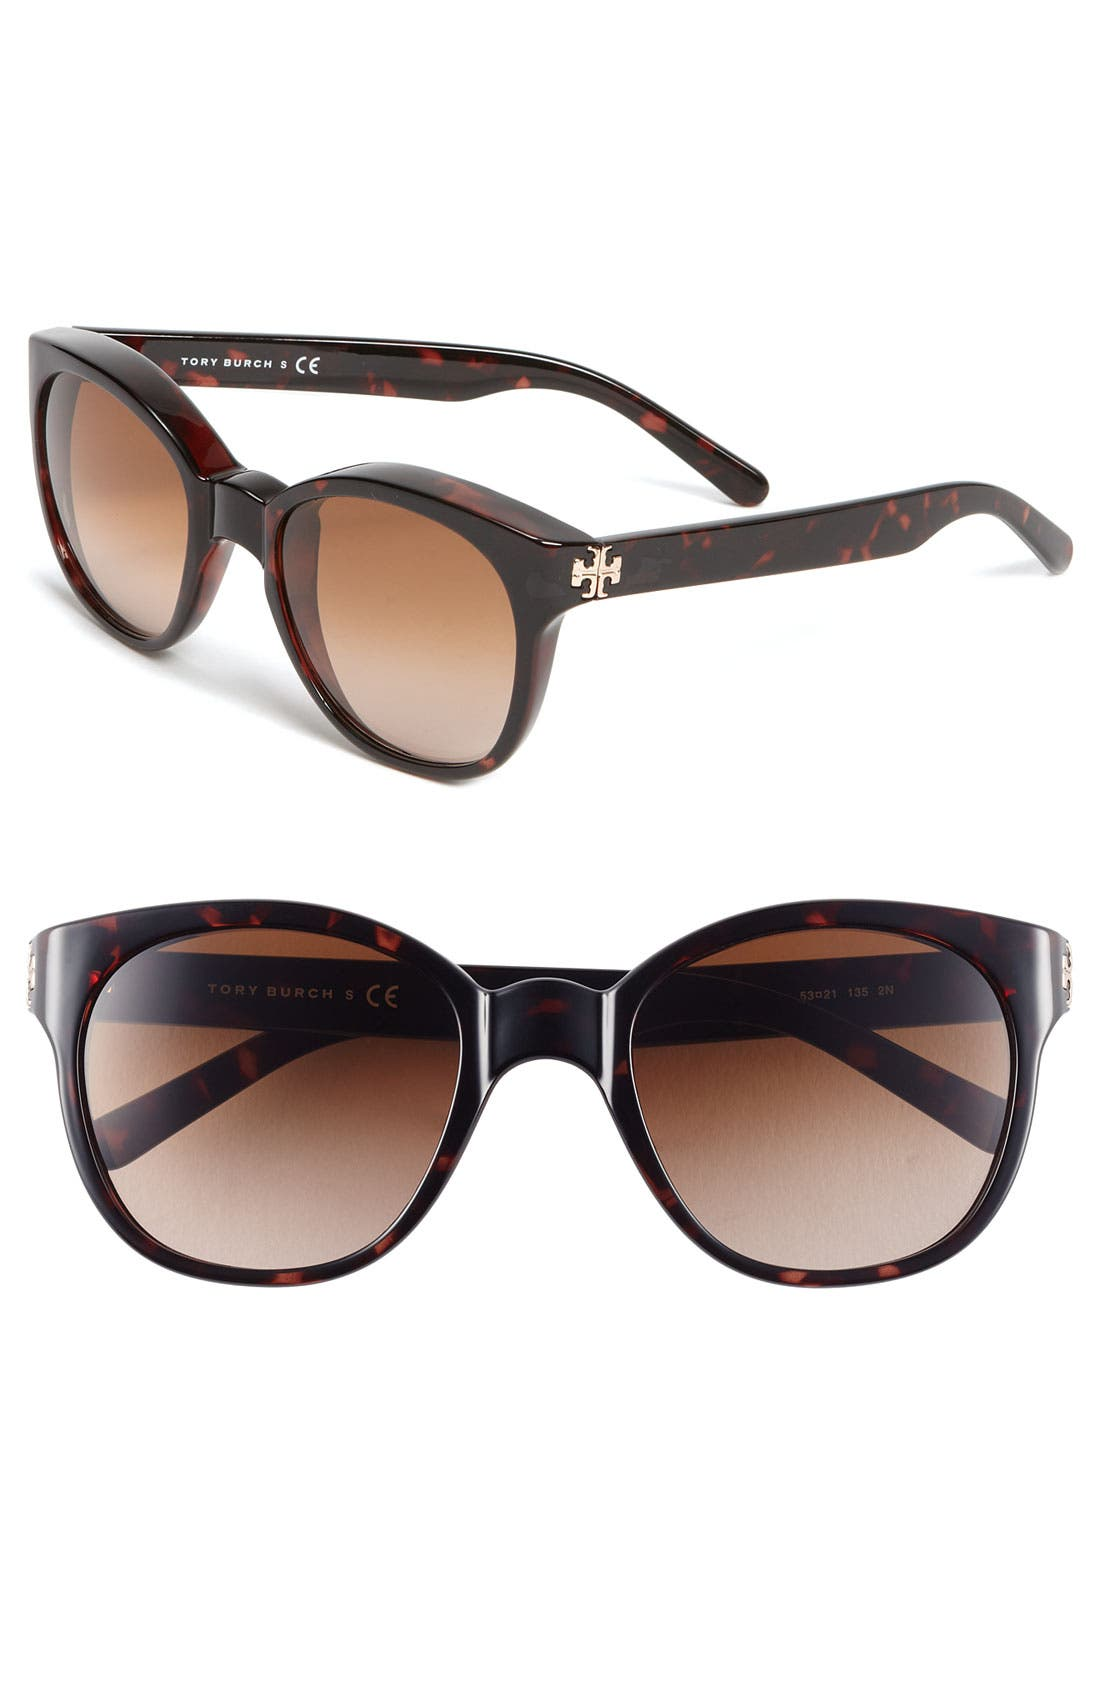 Main Image - Tory Burch 53mm Retro Sunglasses